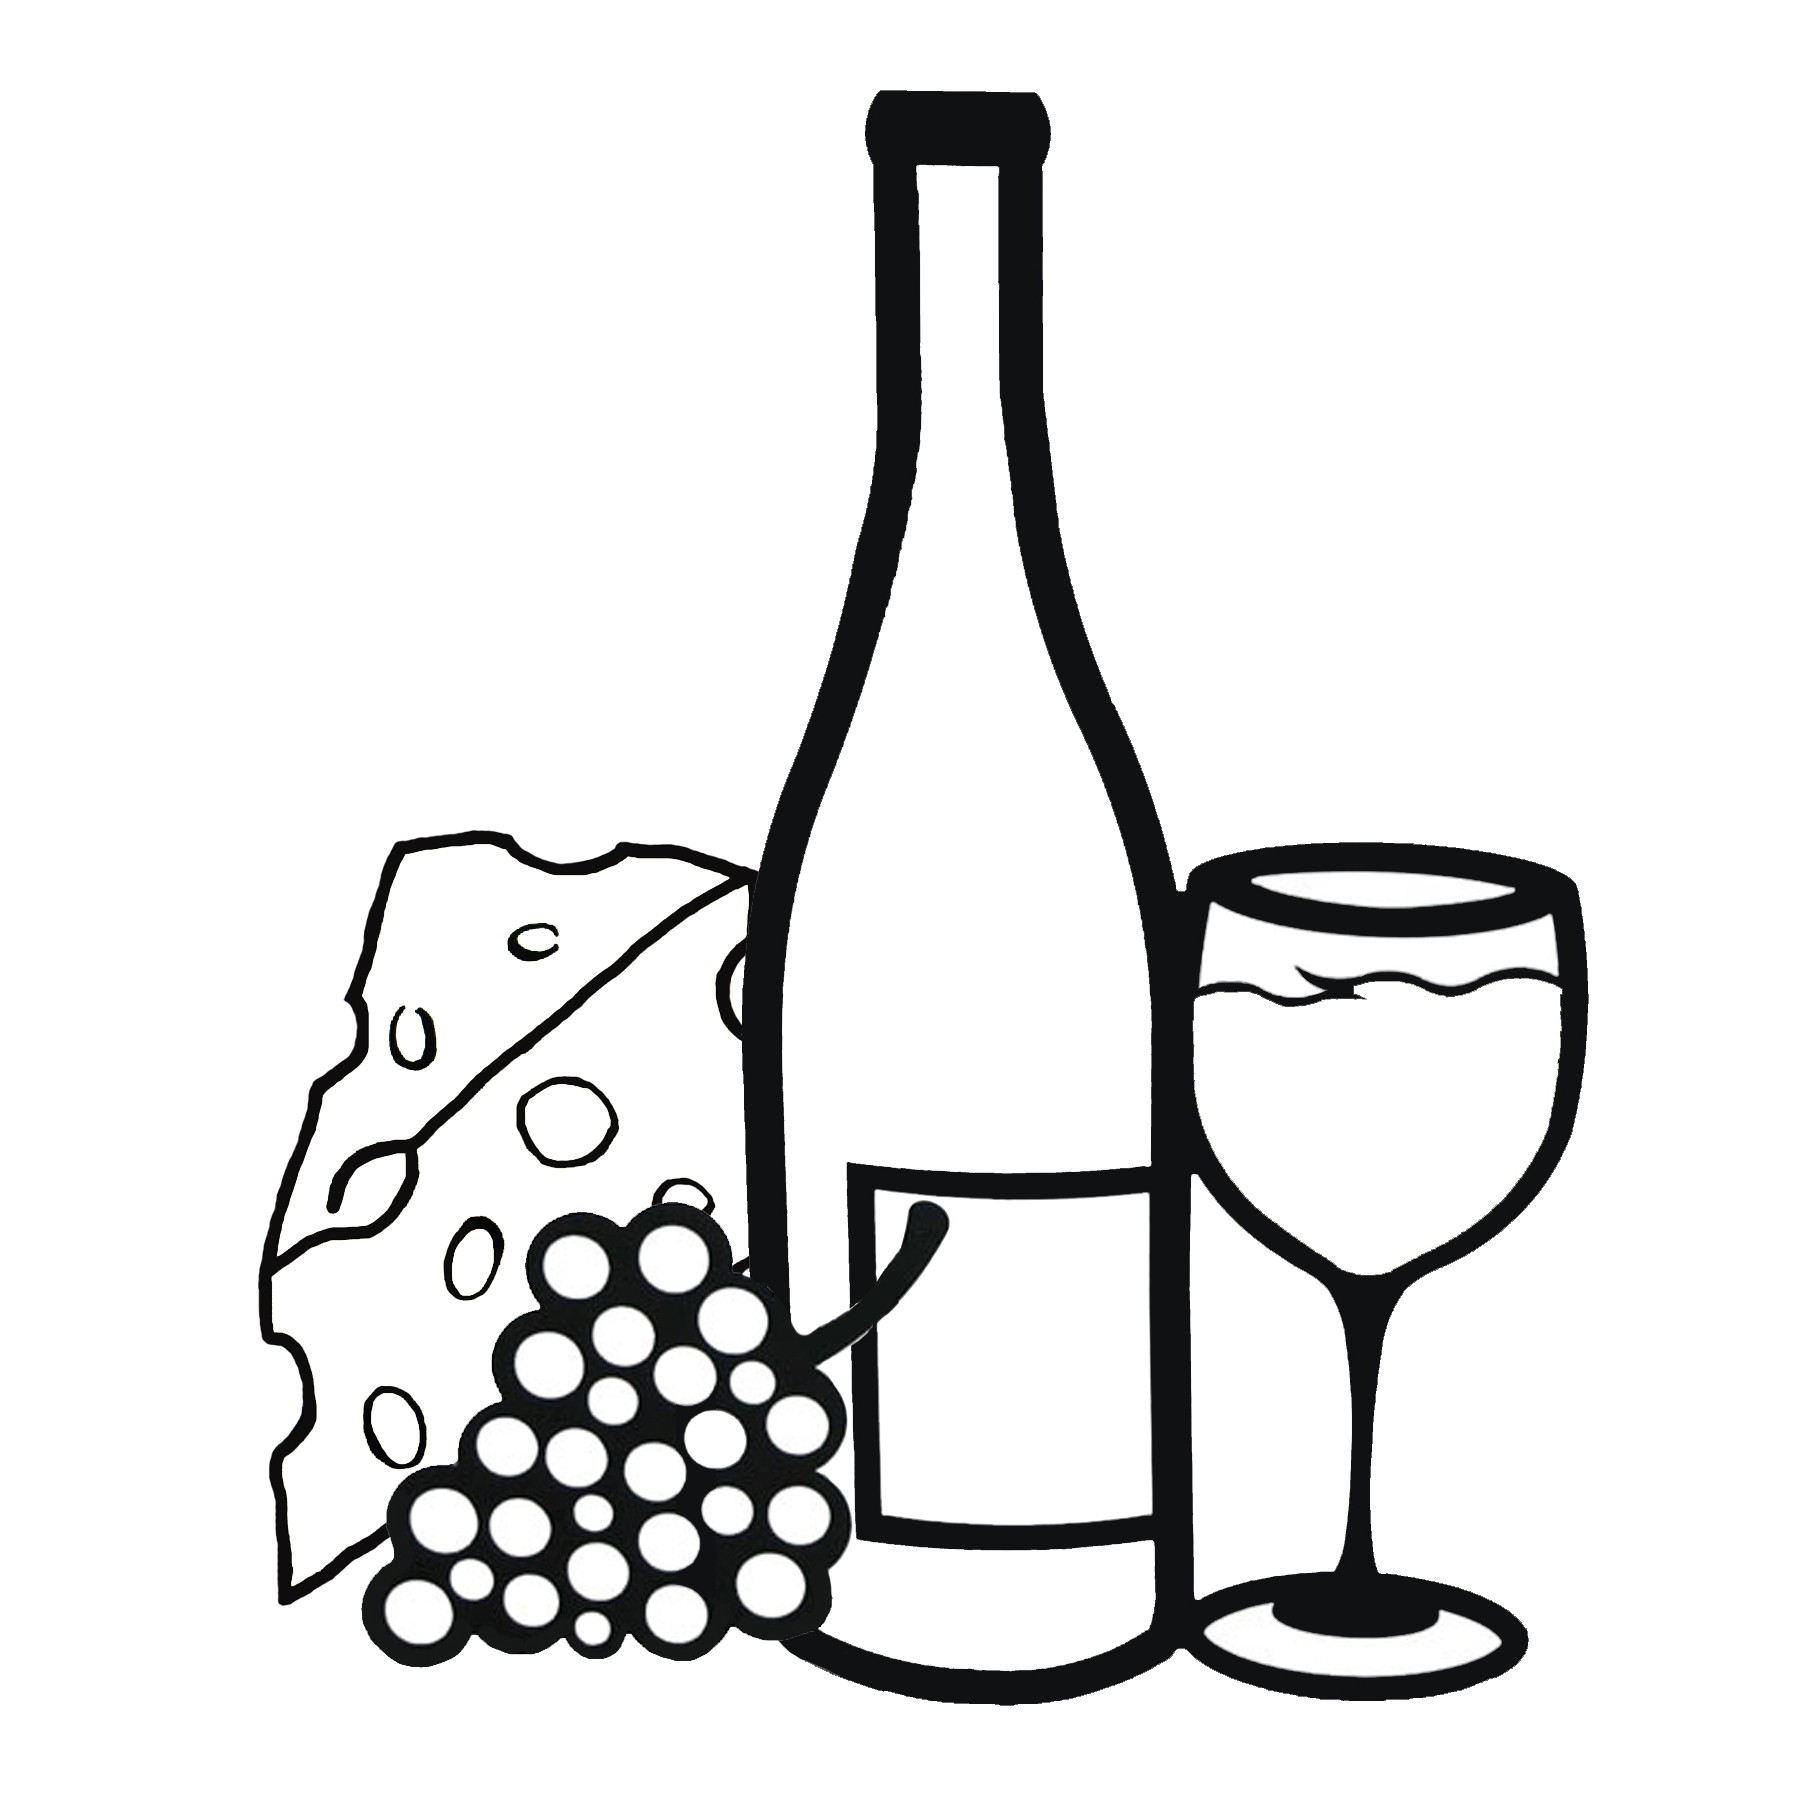 Cliparts Wine Cups Clipart - Clipart Kid